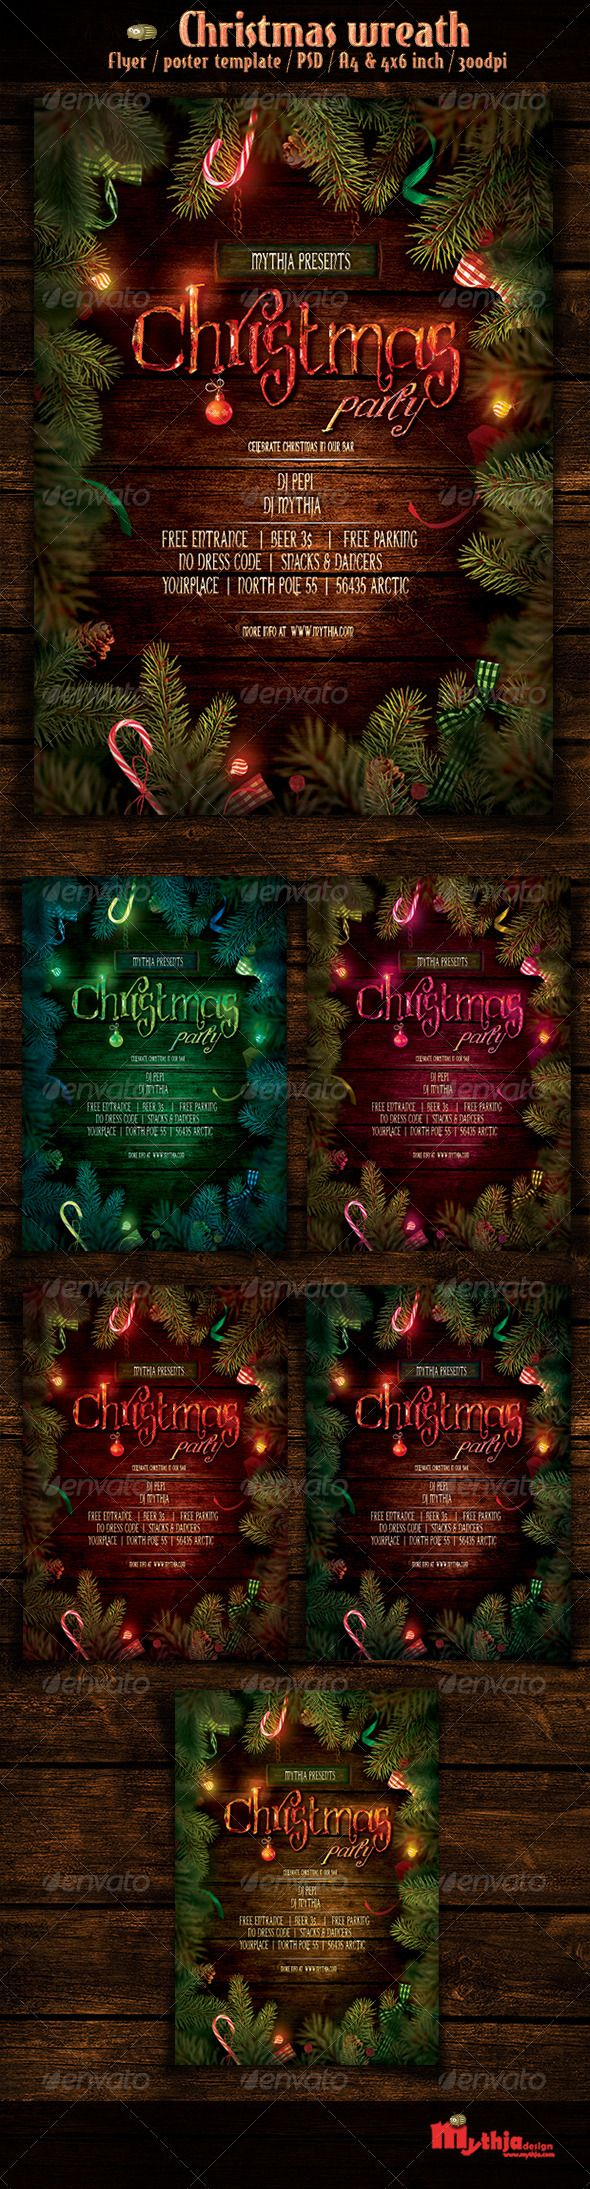 17 best images about graphic designs promotion christmas wreath event flyer poster template